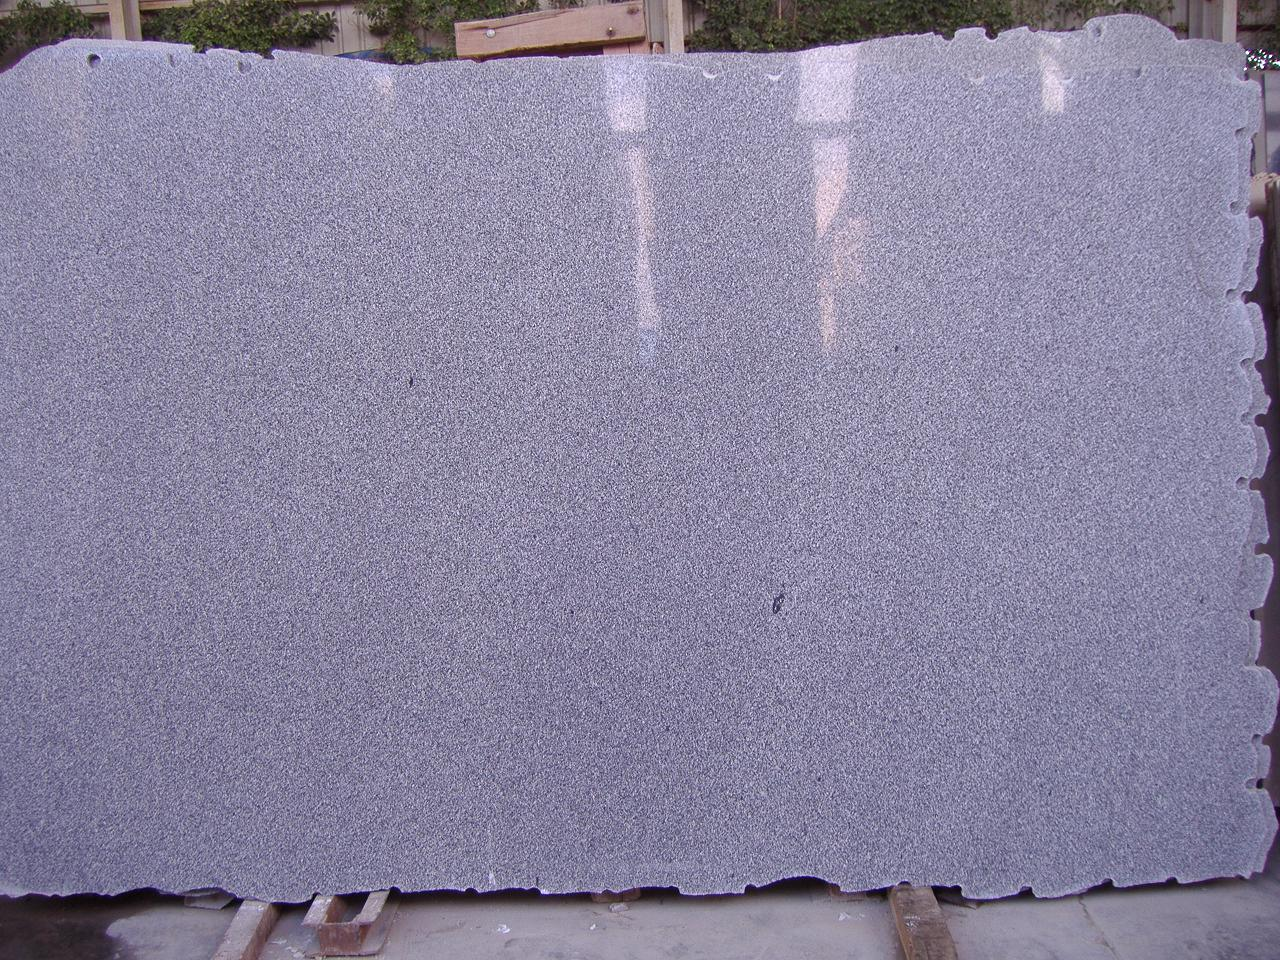 Sudan Grey Granite